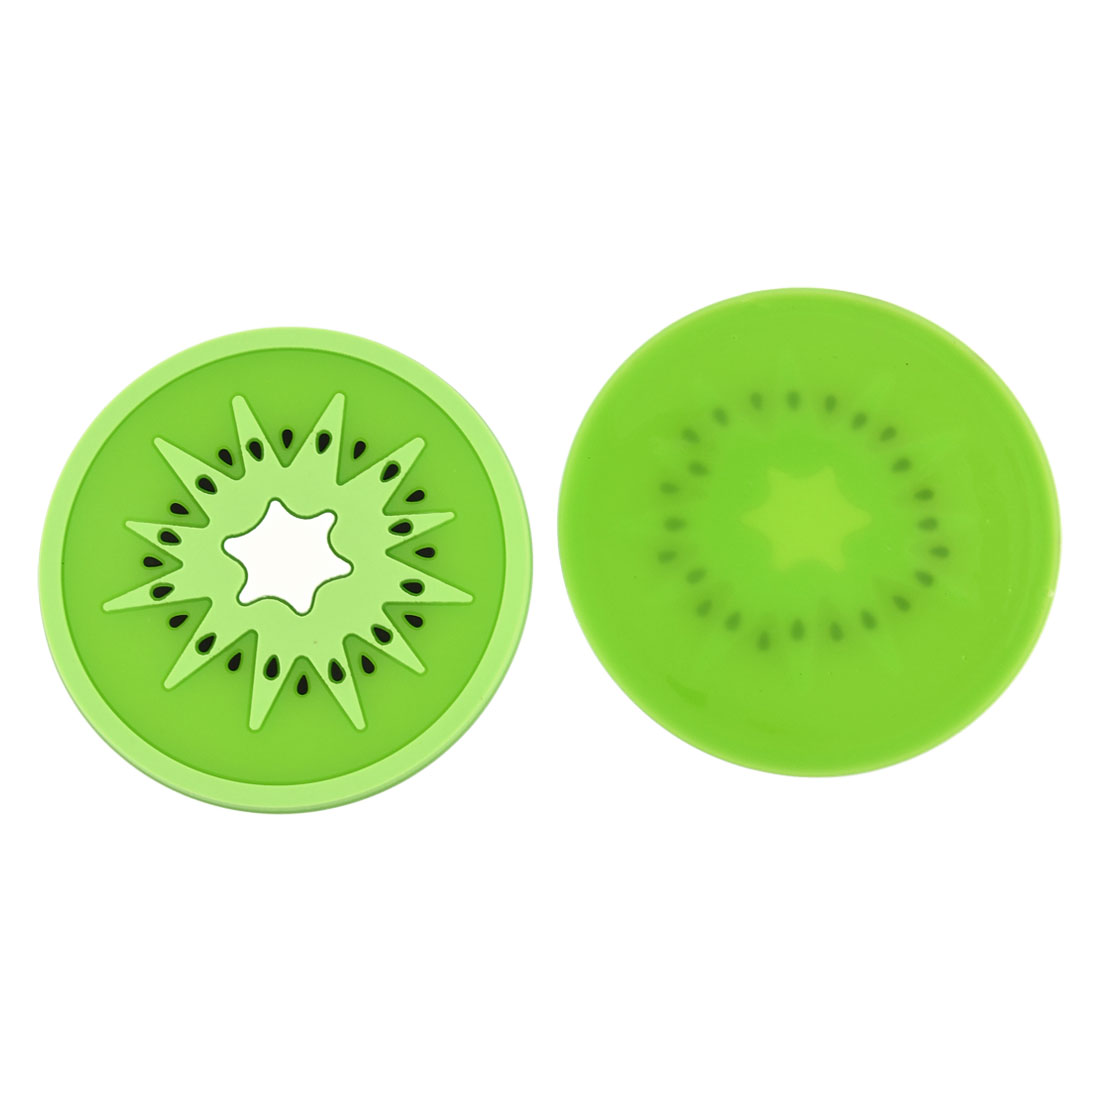 Household Silicone Kiwi Fruit Shaped Teapot Bottle Cup Coasters Mat Light Green 2 Pcs